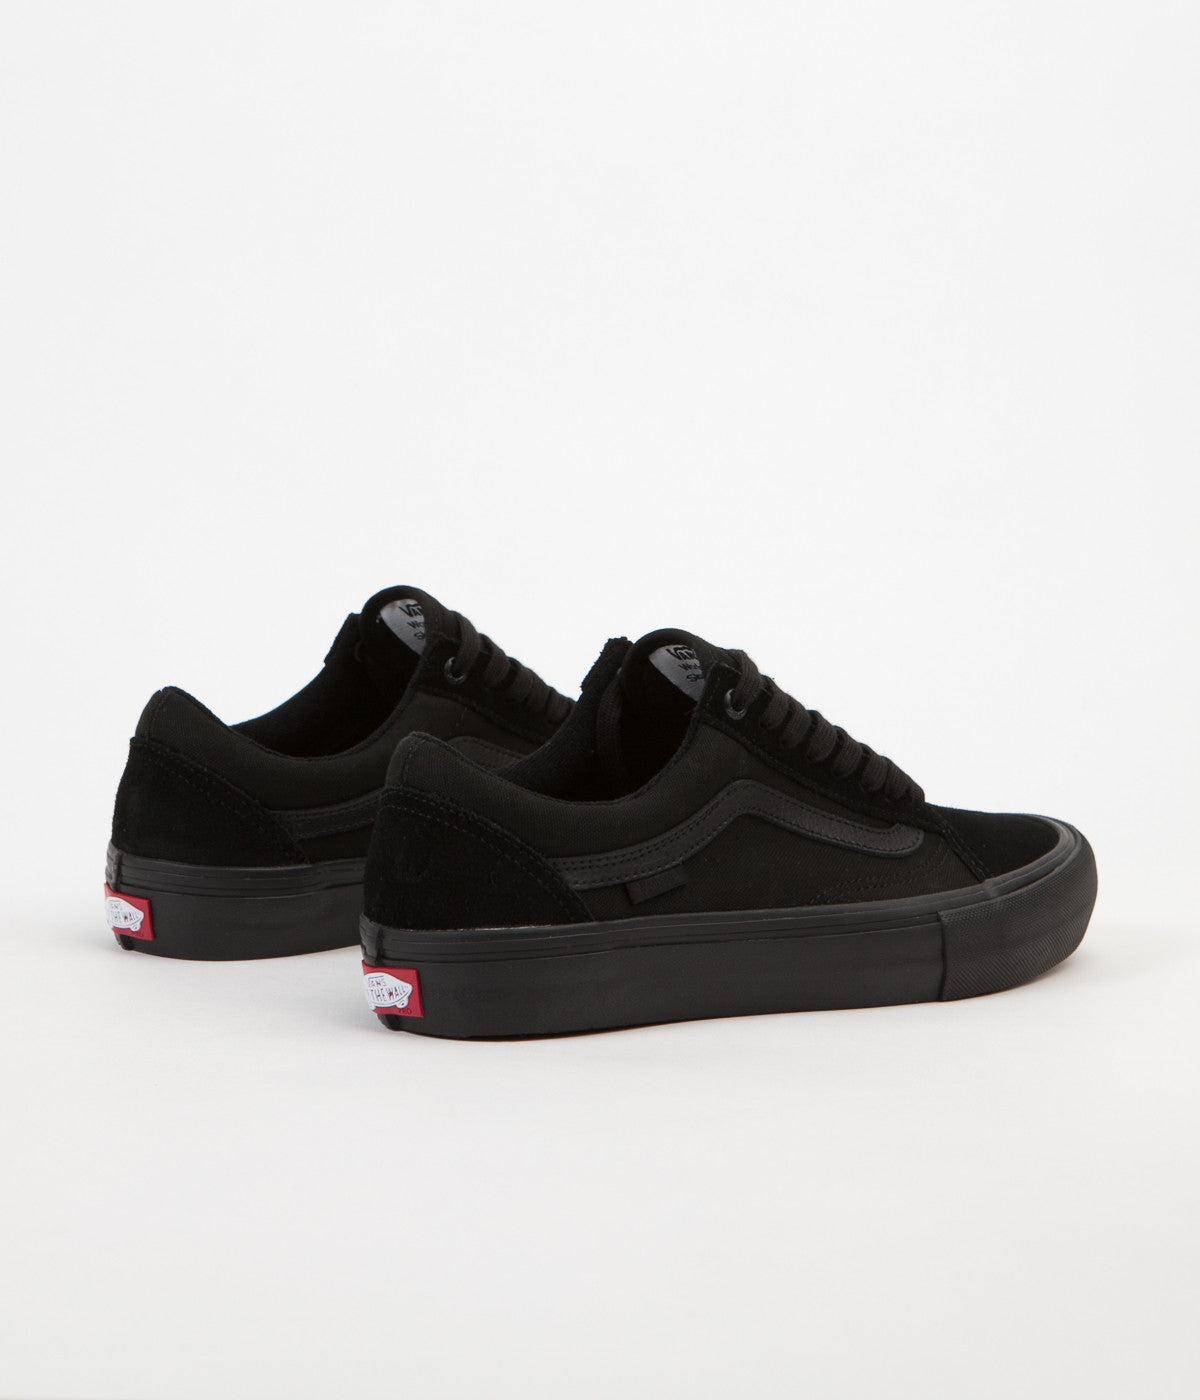 ca0a9af80e55 Vans Old Skool Pro Shoes - Blackout